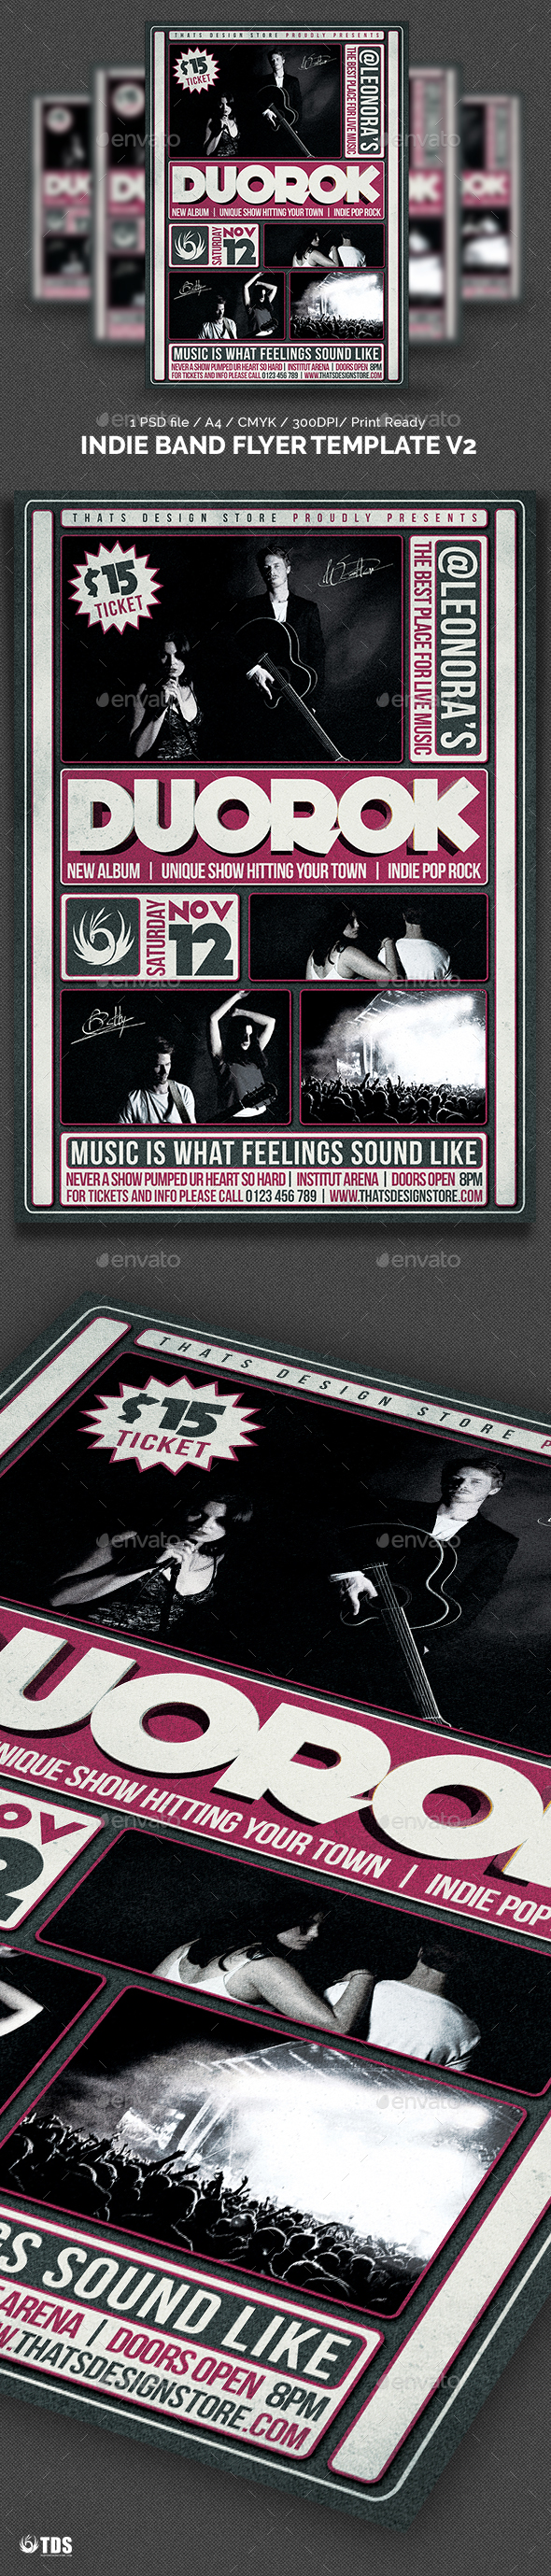 Indie Band Flyer Template V2   Concerts Events